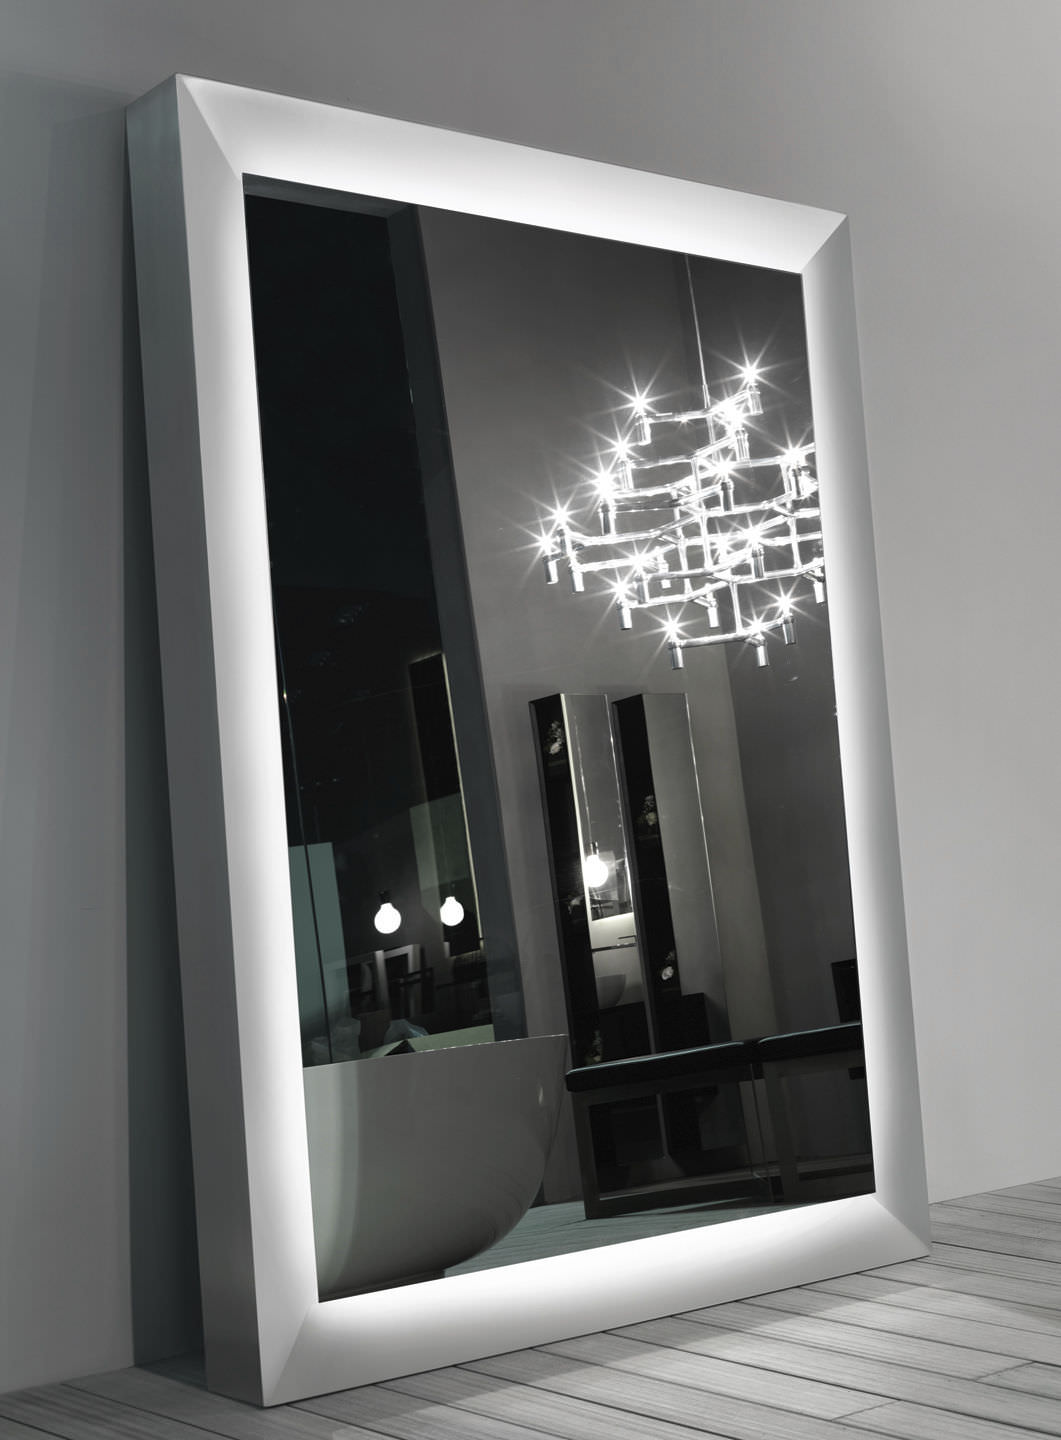 freestanding mirror  contemporary  square  big one  rifra mobili - freestanding mirror  contemporary  square  big one